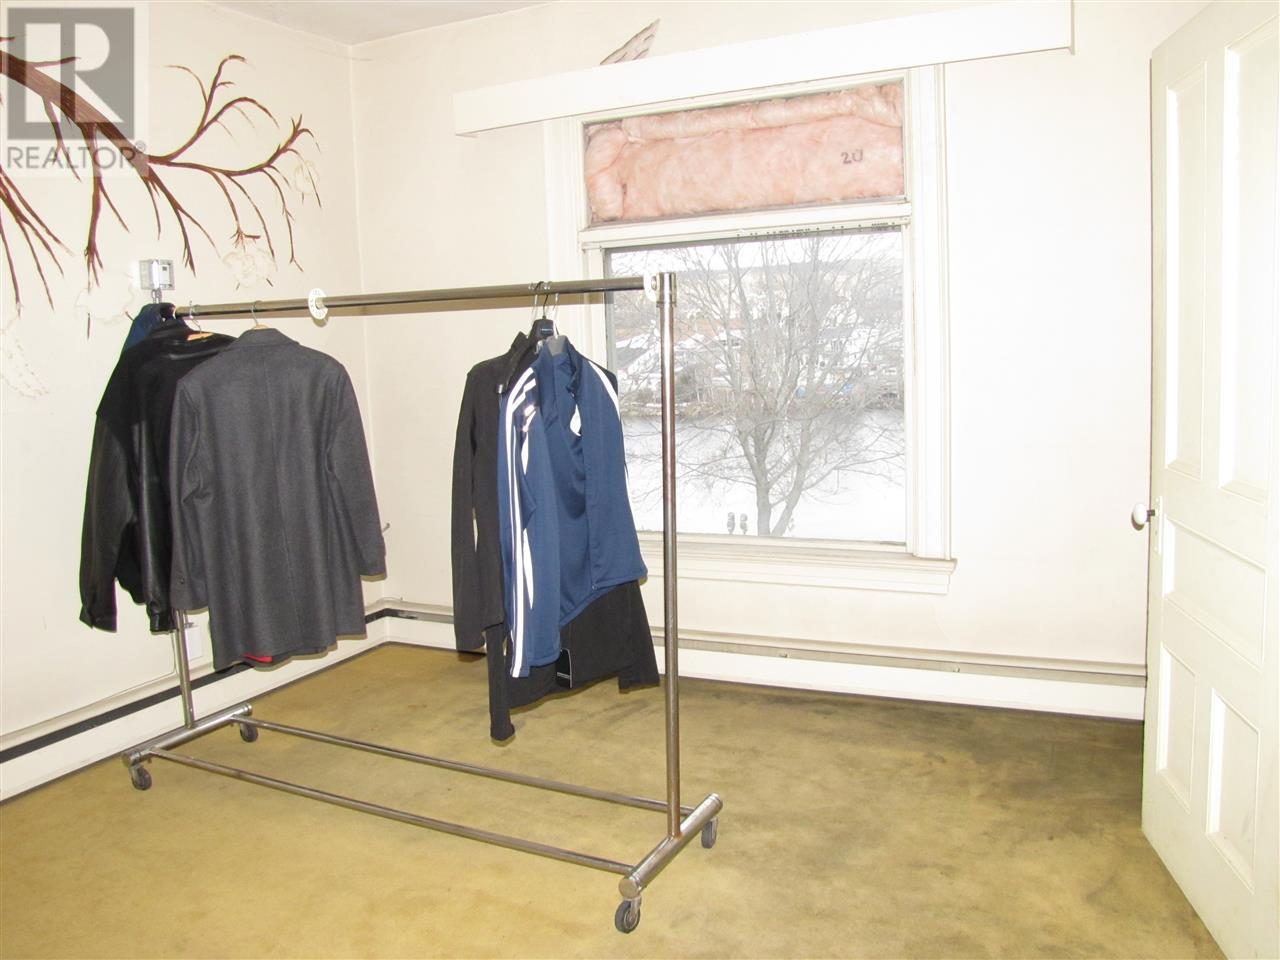 629 King St, Bridgewater - Commercial Property For Sale | Zolo.ca